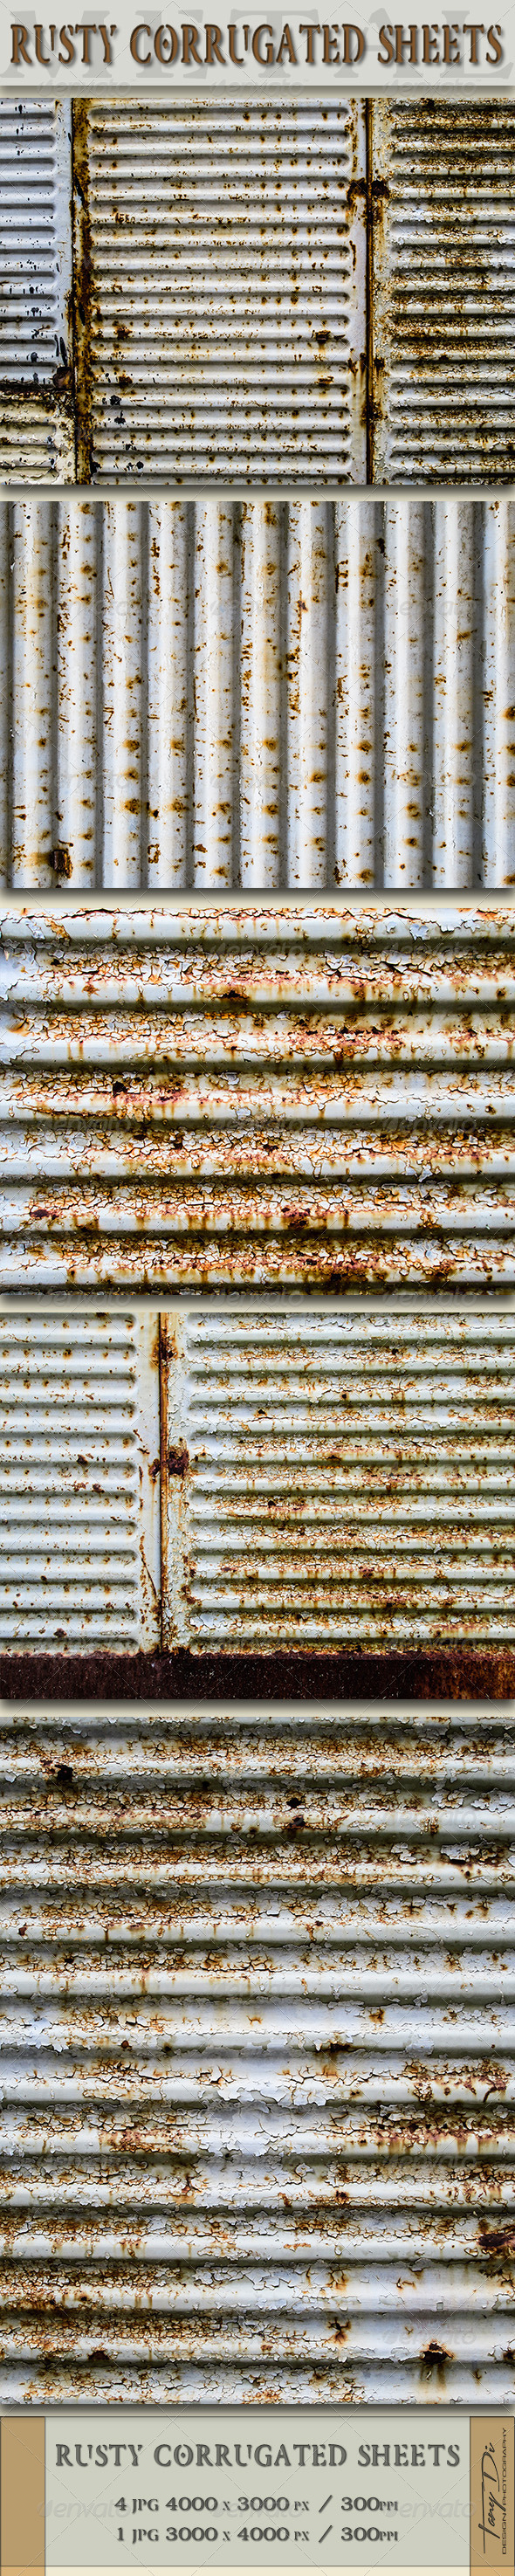 GraphicRiver Rusty Corrugated Sheets 4996748